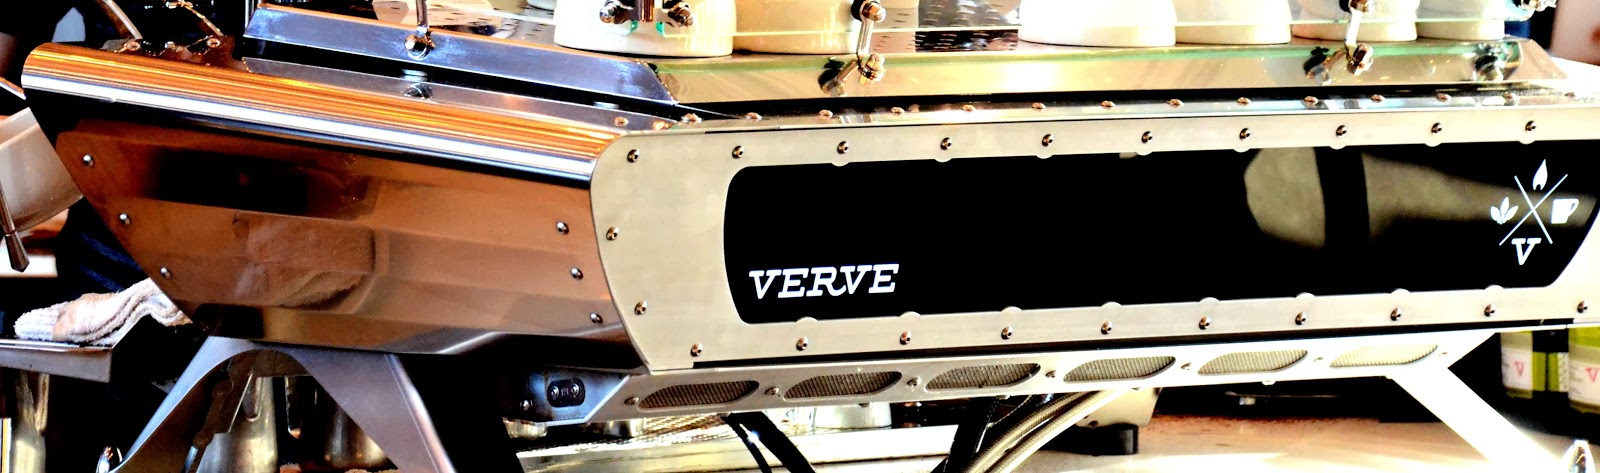 Verve Coffee Roaster - Santa Cruz, Californie, USA